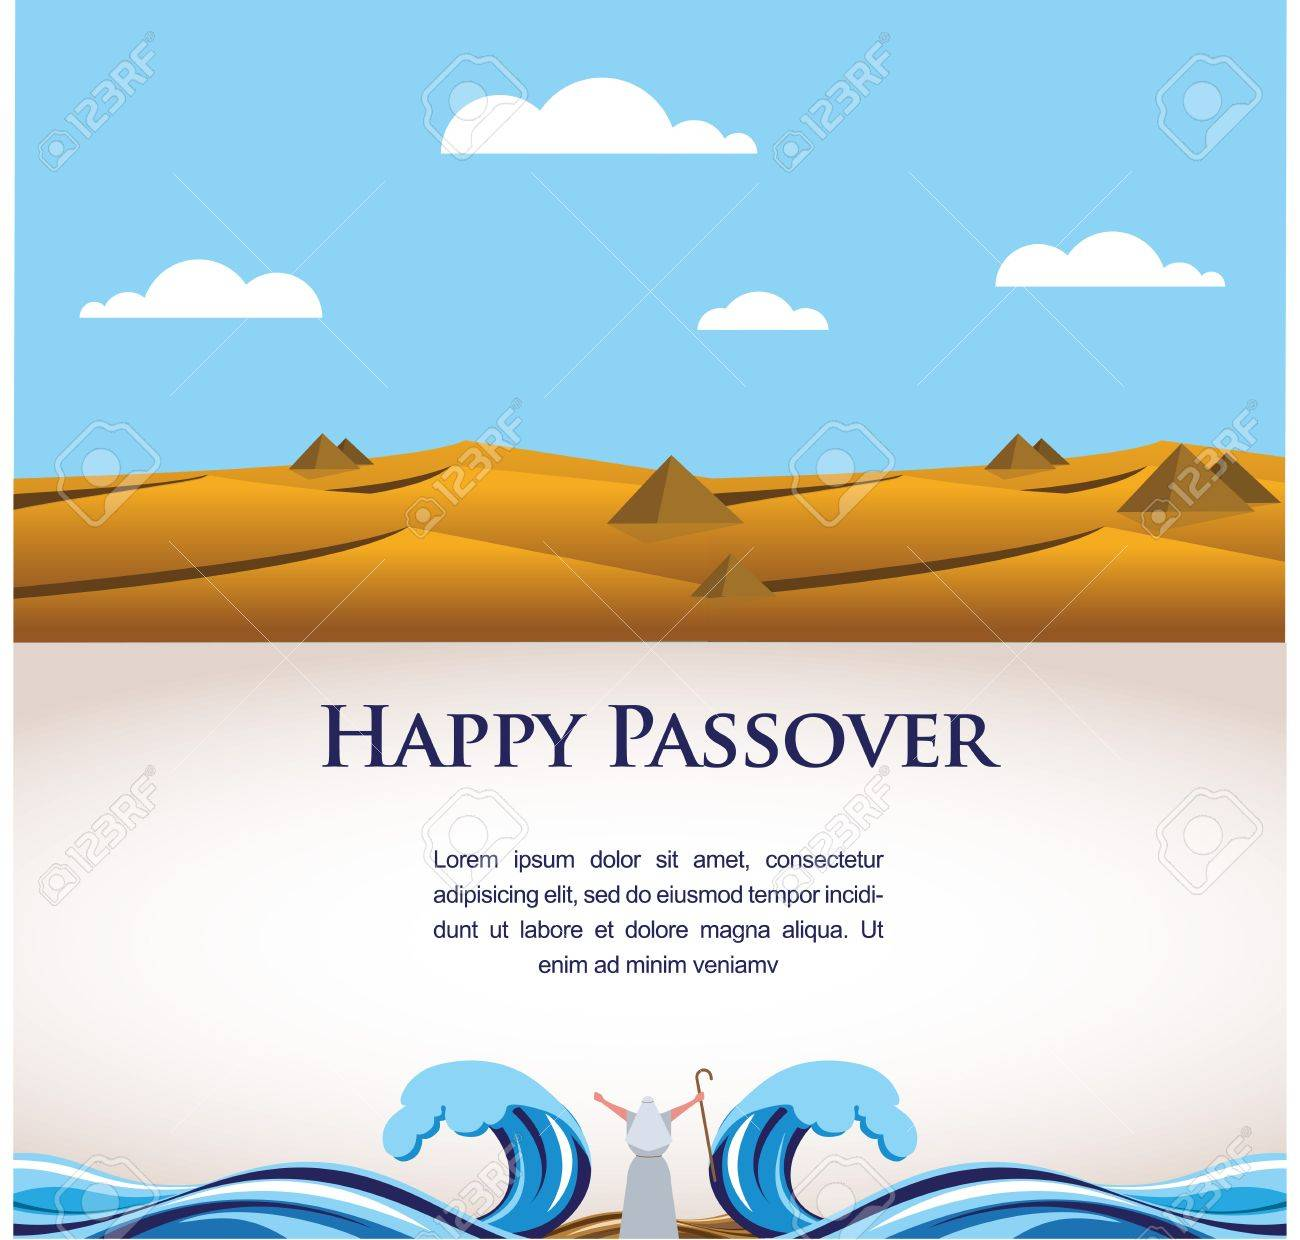 happy passover out of the jews from egypt illustration royalty